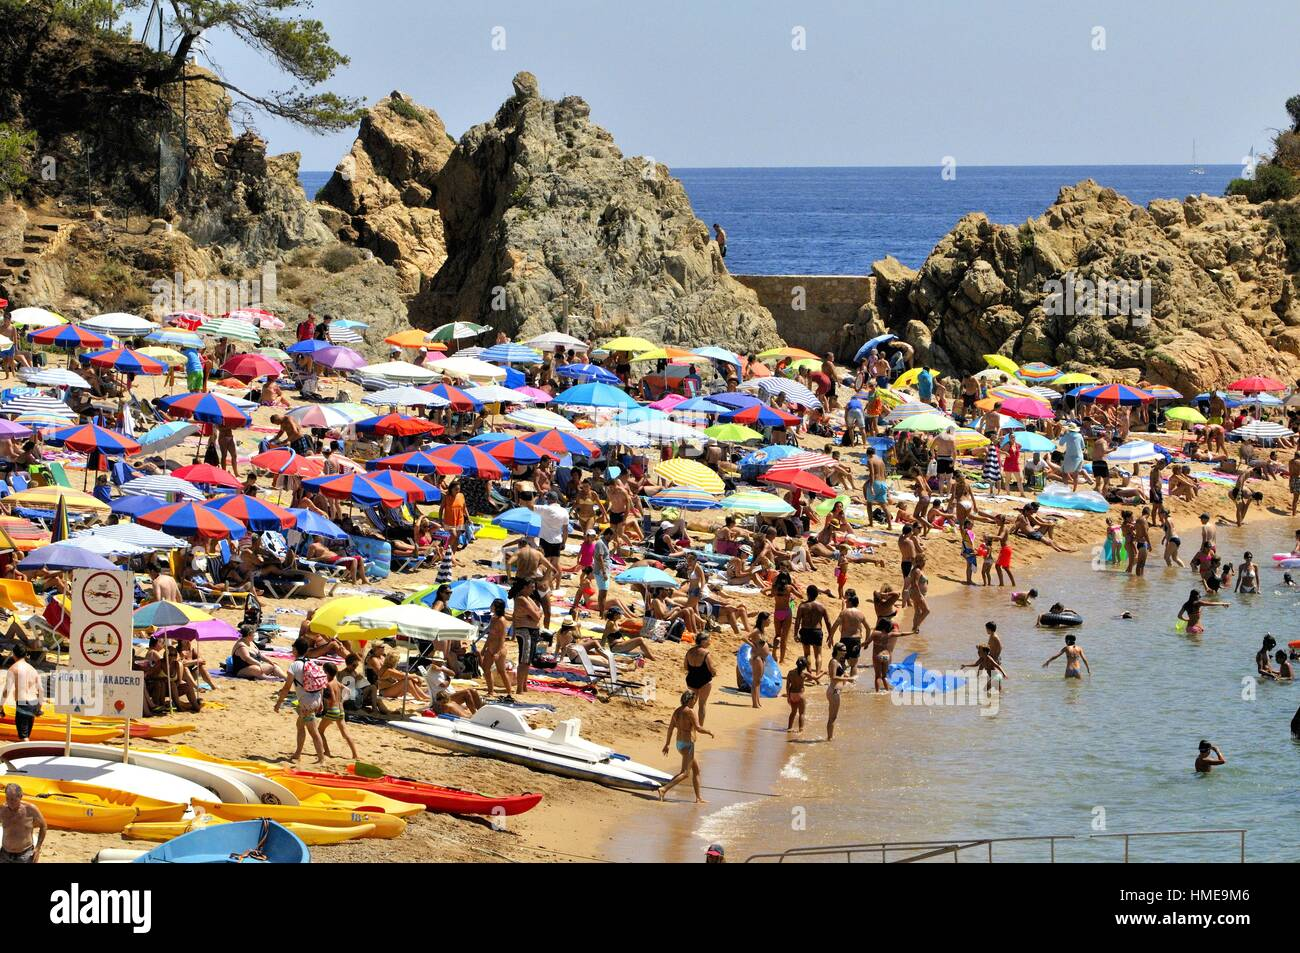 Tossa De Mar Beach Located Stock Photos & Tossa De Mar Beach Located ...